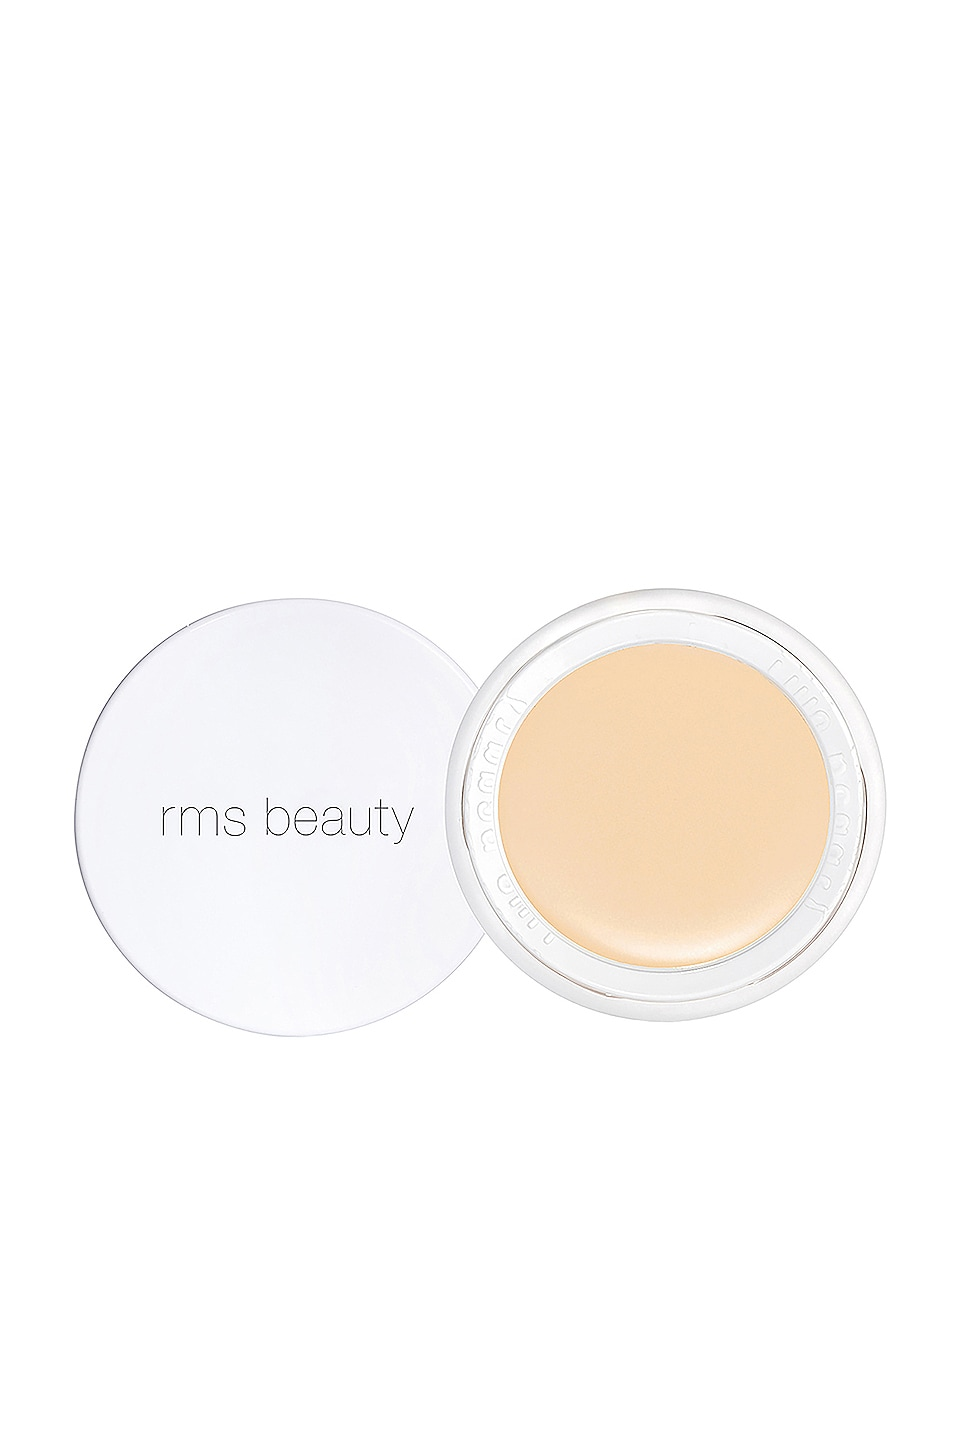 RMS Beauty Uncover Up in 00